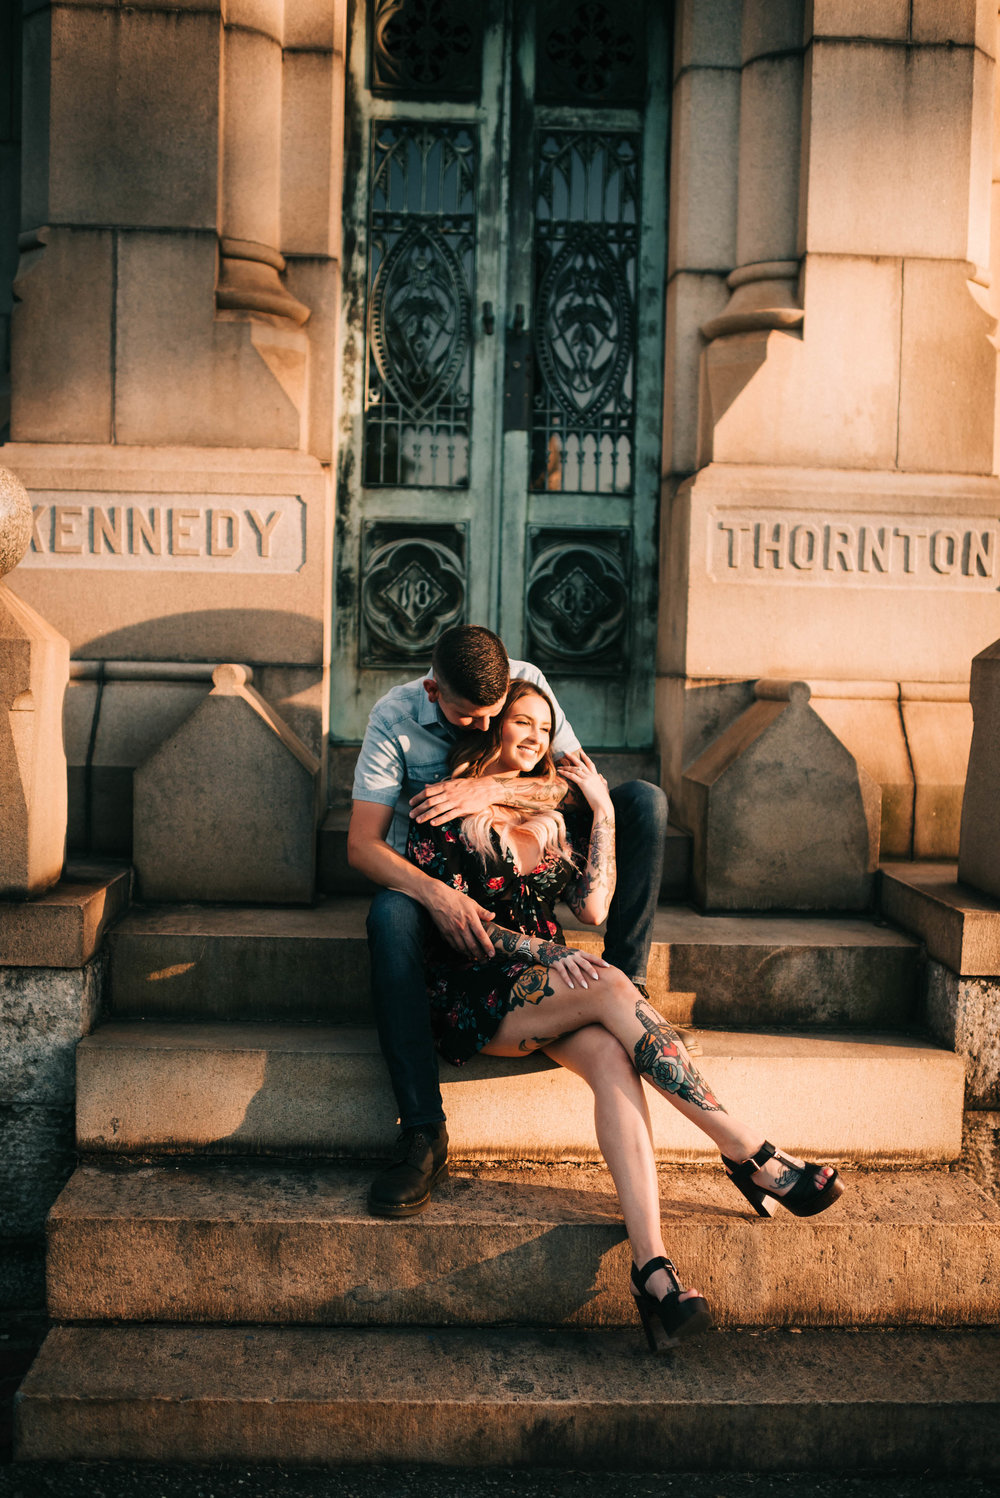 atlanta georgia san francisco california bay area sf oakland wedding portrait adventure engageement nontraditional tattooed couple photographer-136.jpg